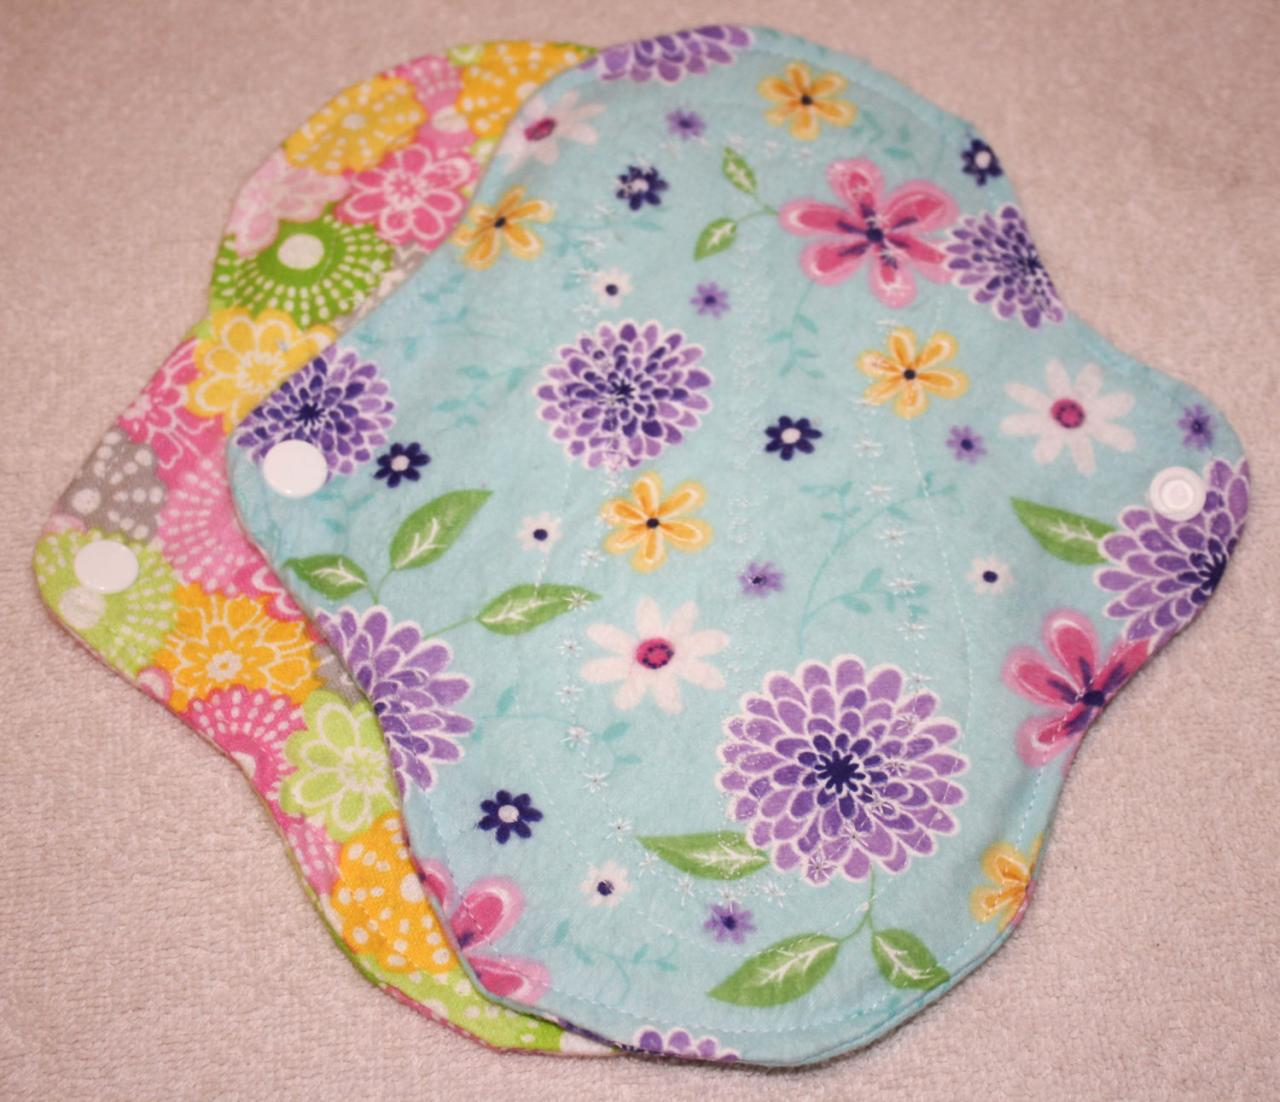 Two, 7 inch Washable Menstrual Pads CHOOSE YOUR PRINT